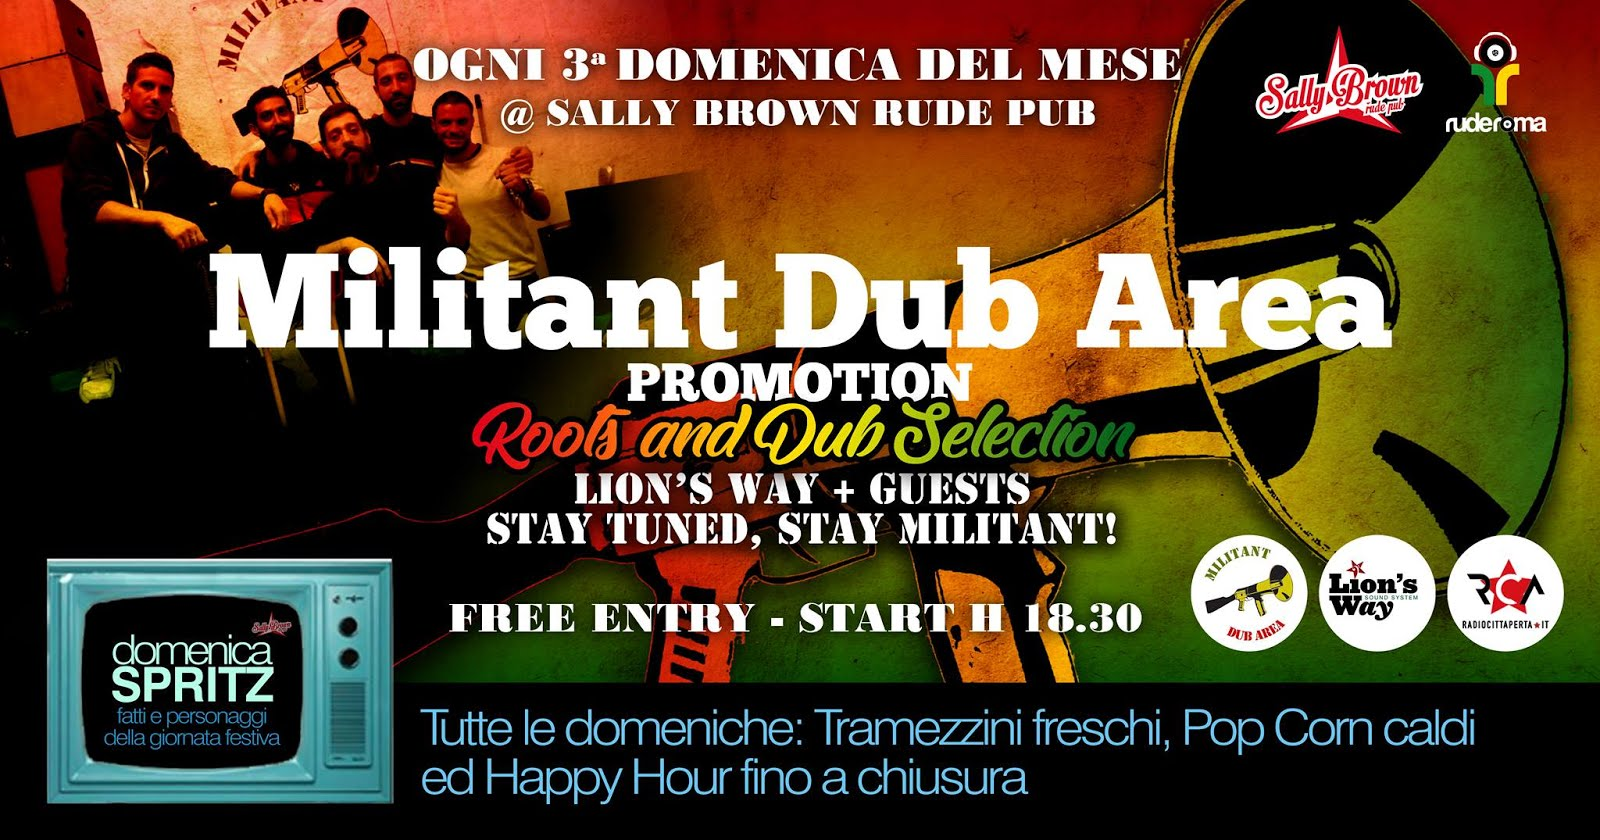 NEXT LION'S WAY/MILITANT DUB AREA EVENTS